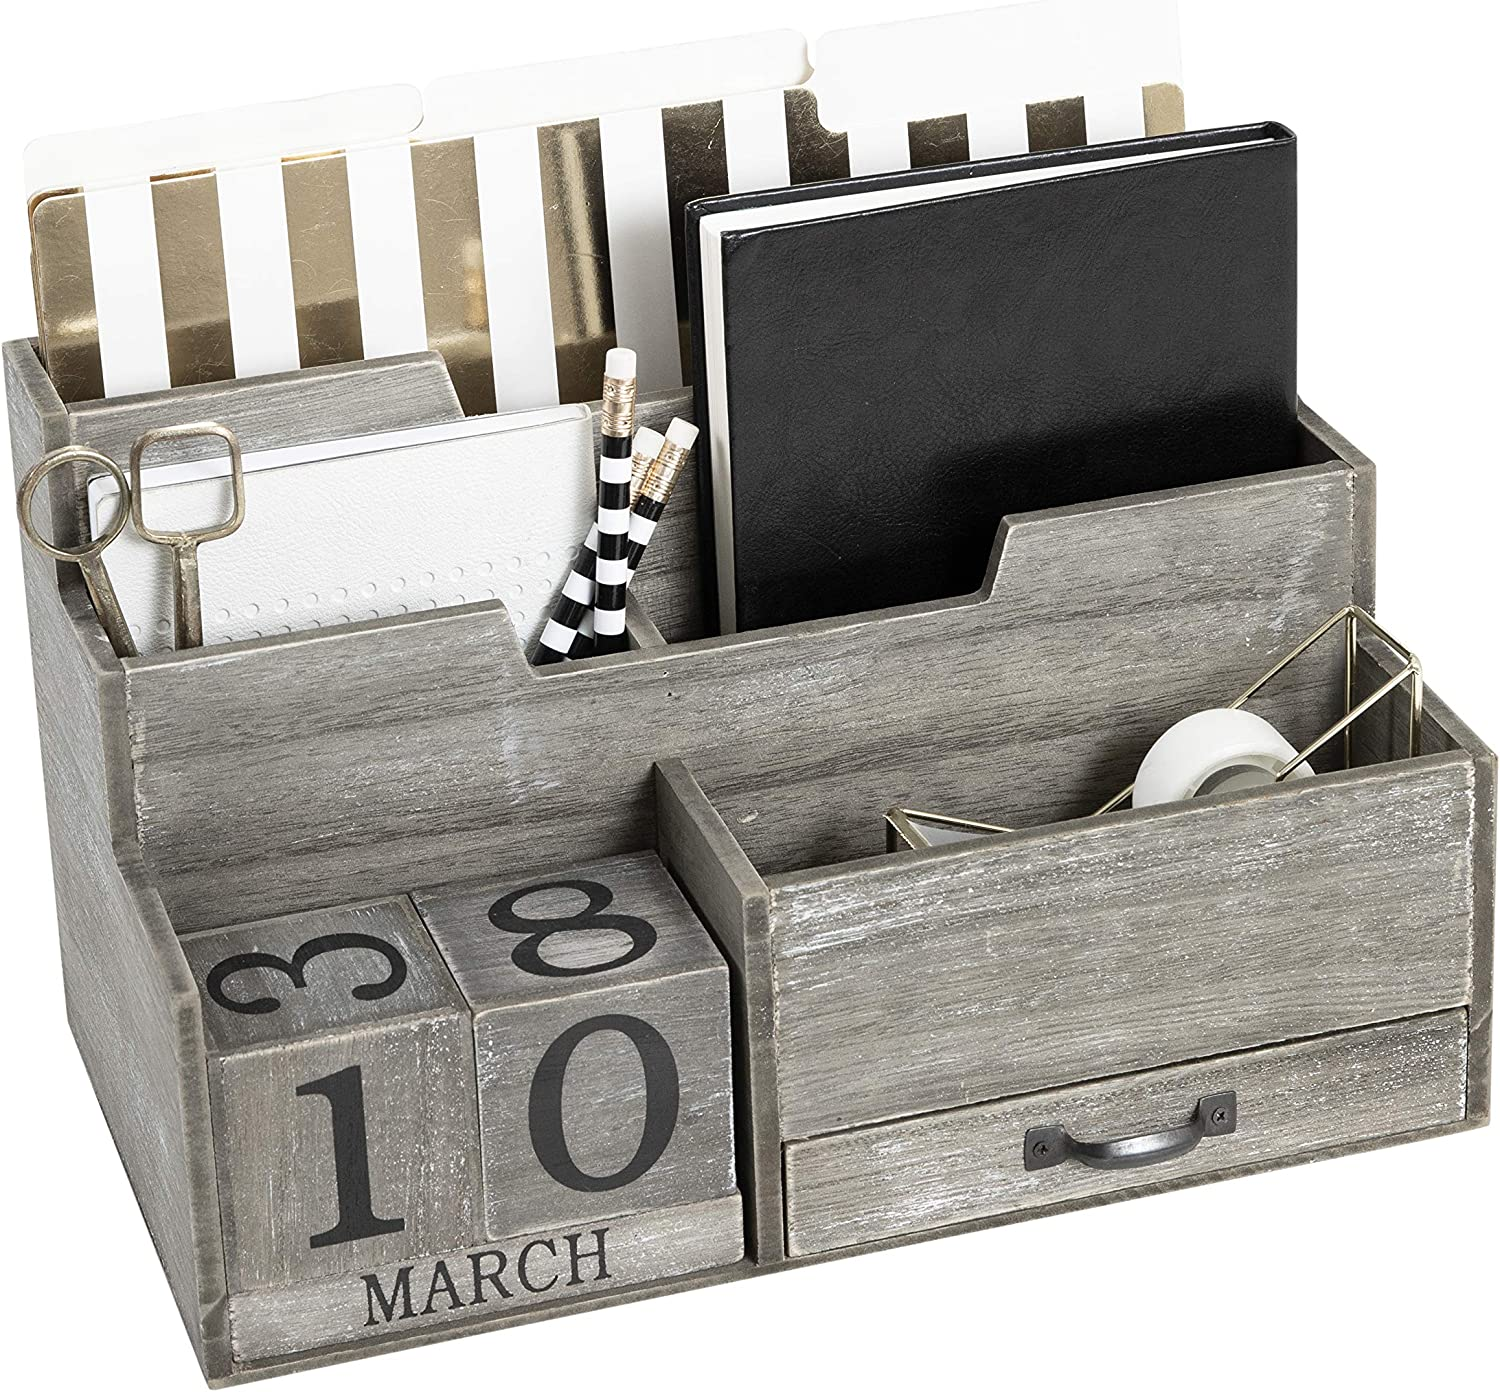 Dark Wooden Mail Organizer Desktop with Block Calendar – Mail Sorter Countertop Organizer – Desk Decorations for Women Office